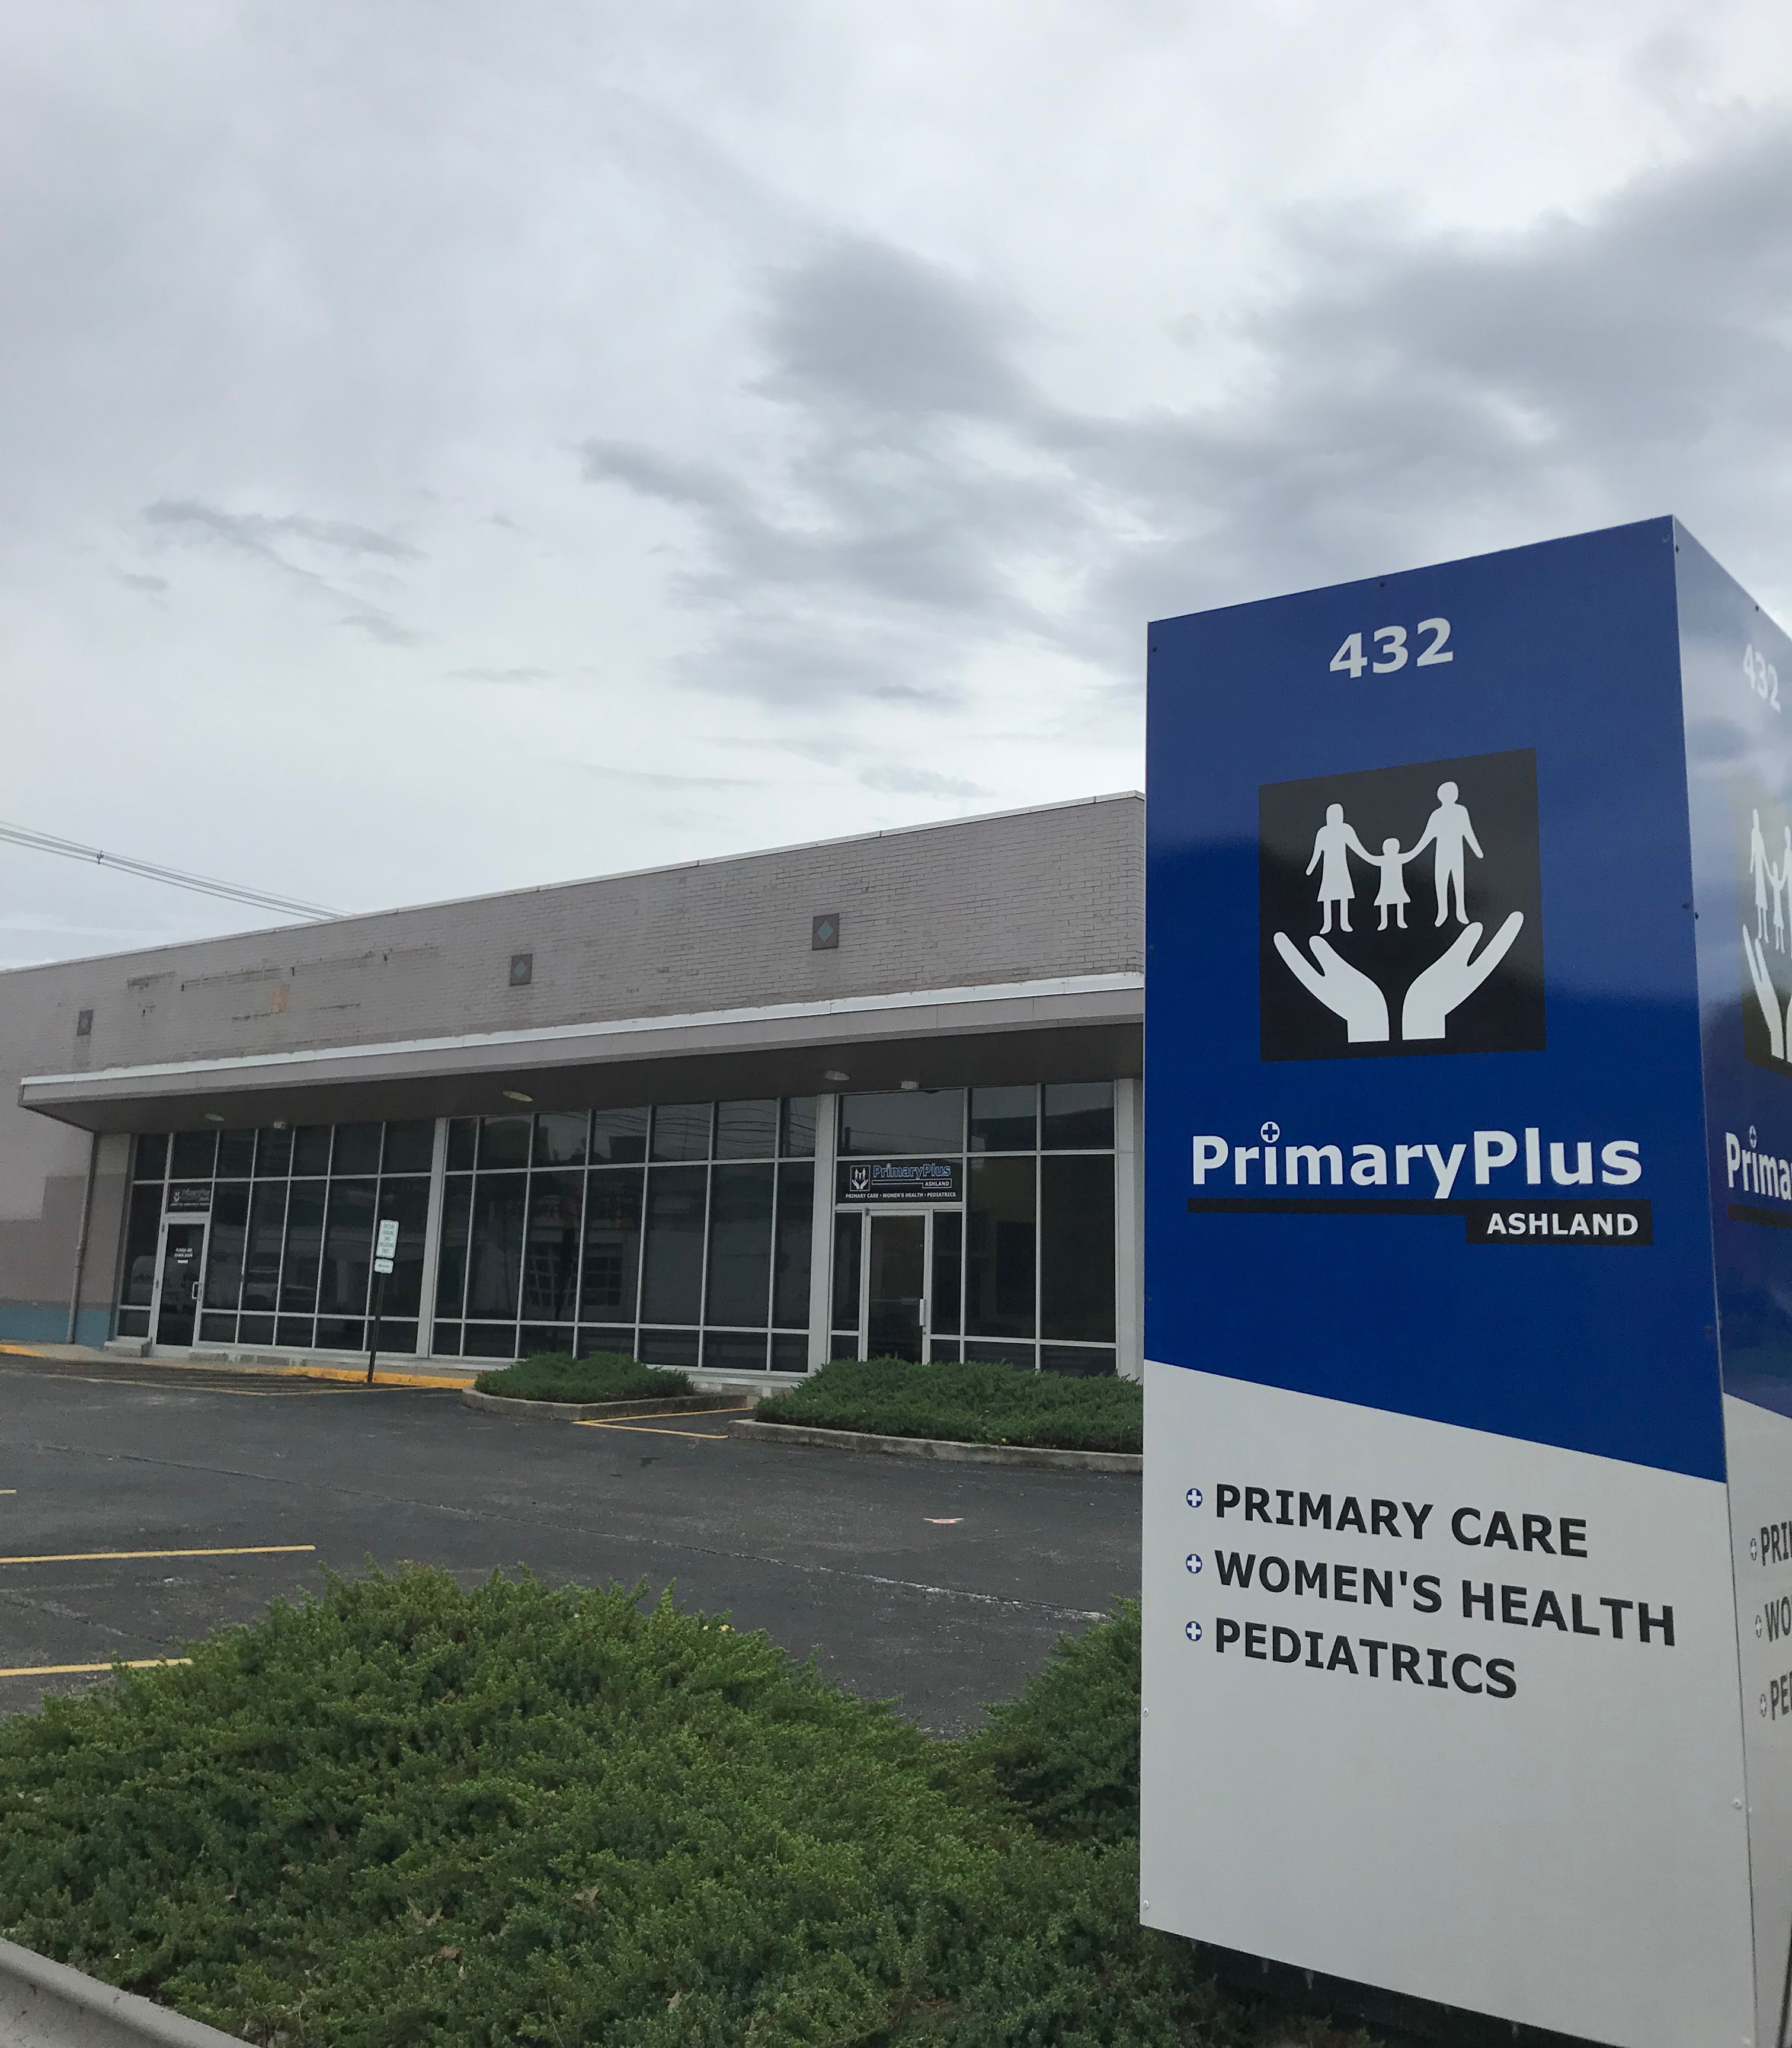 PrimaryPlus-Ashland MOVES to a NEW location News